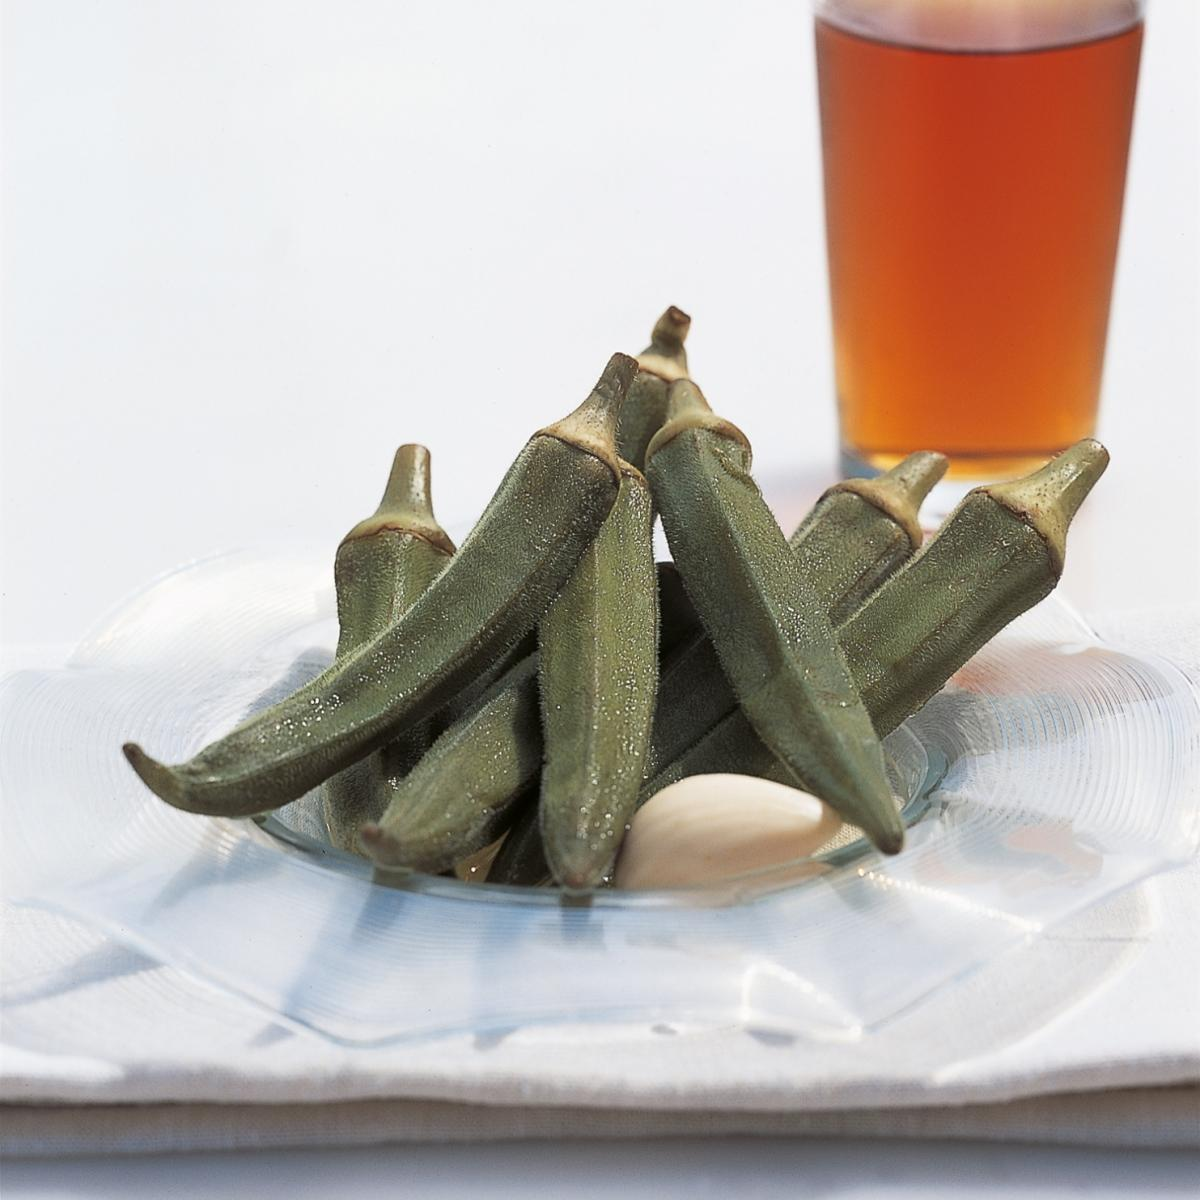 Htc pickled okra